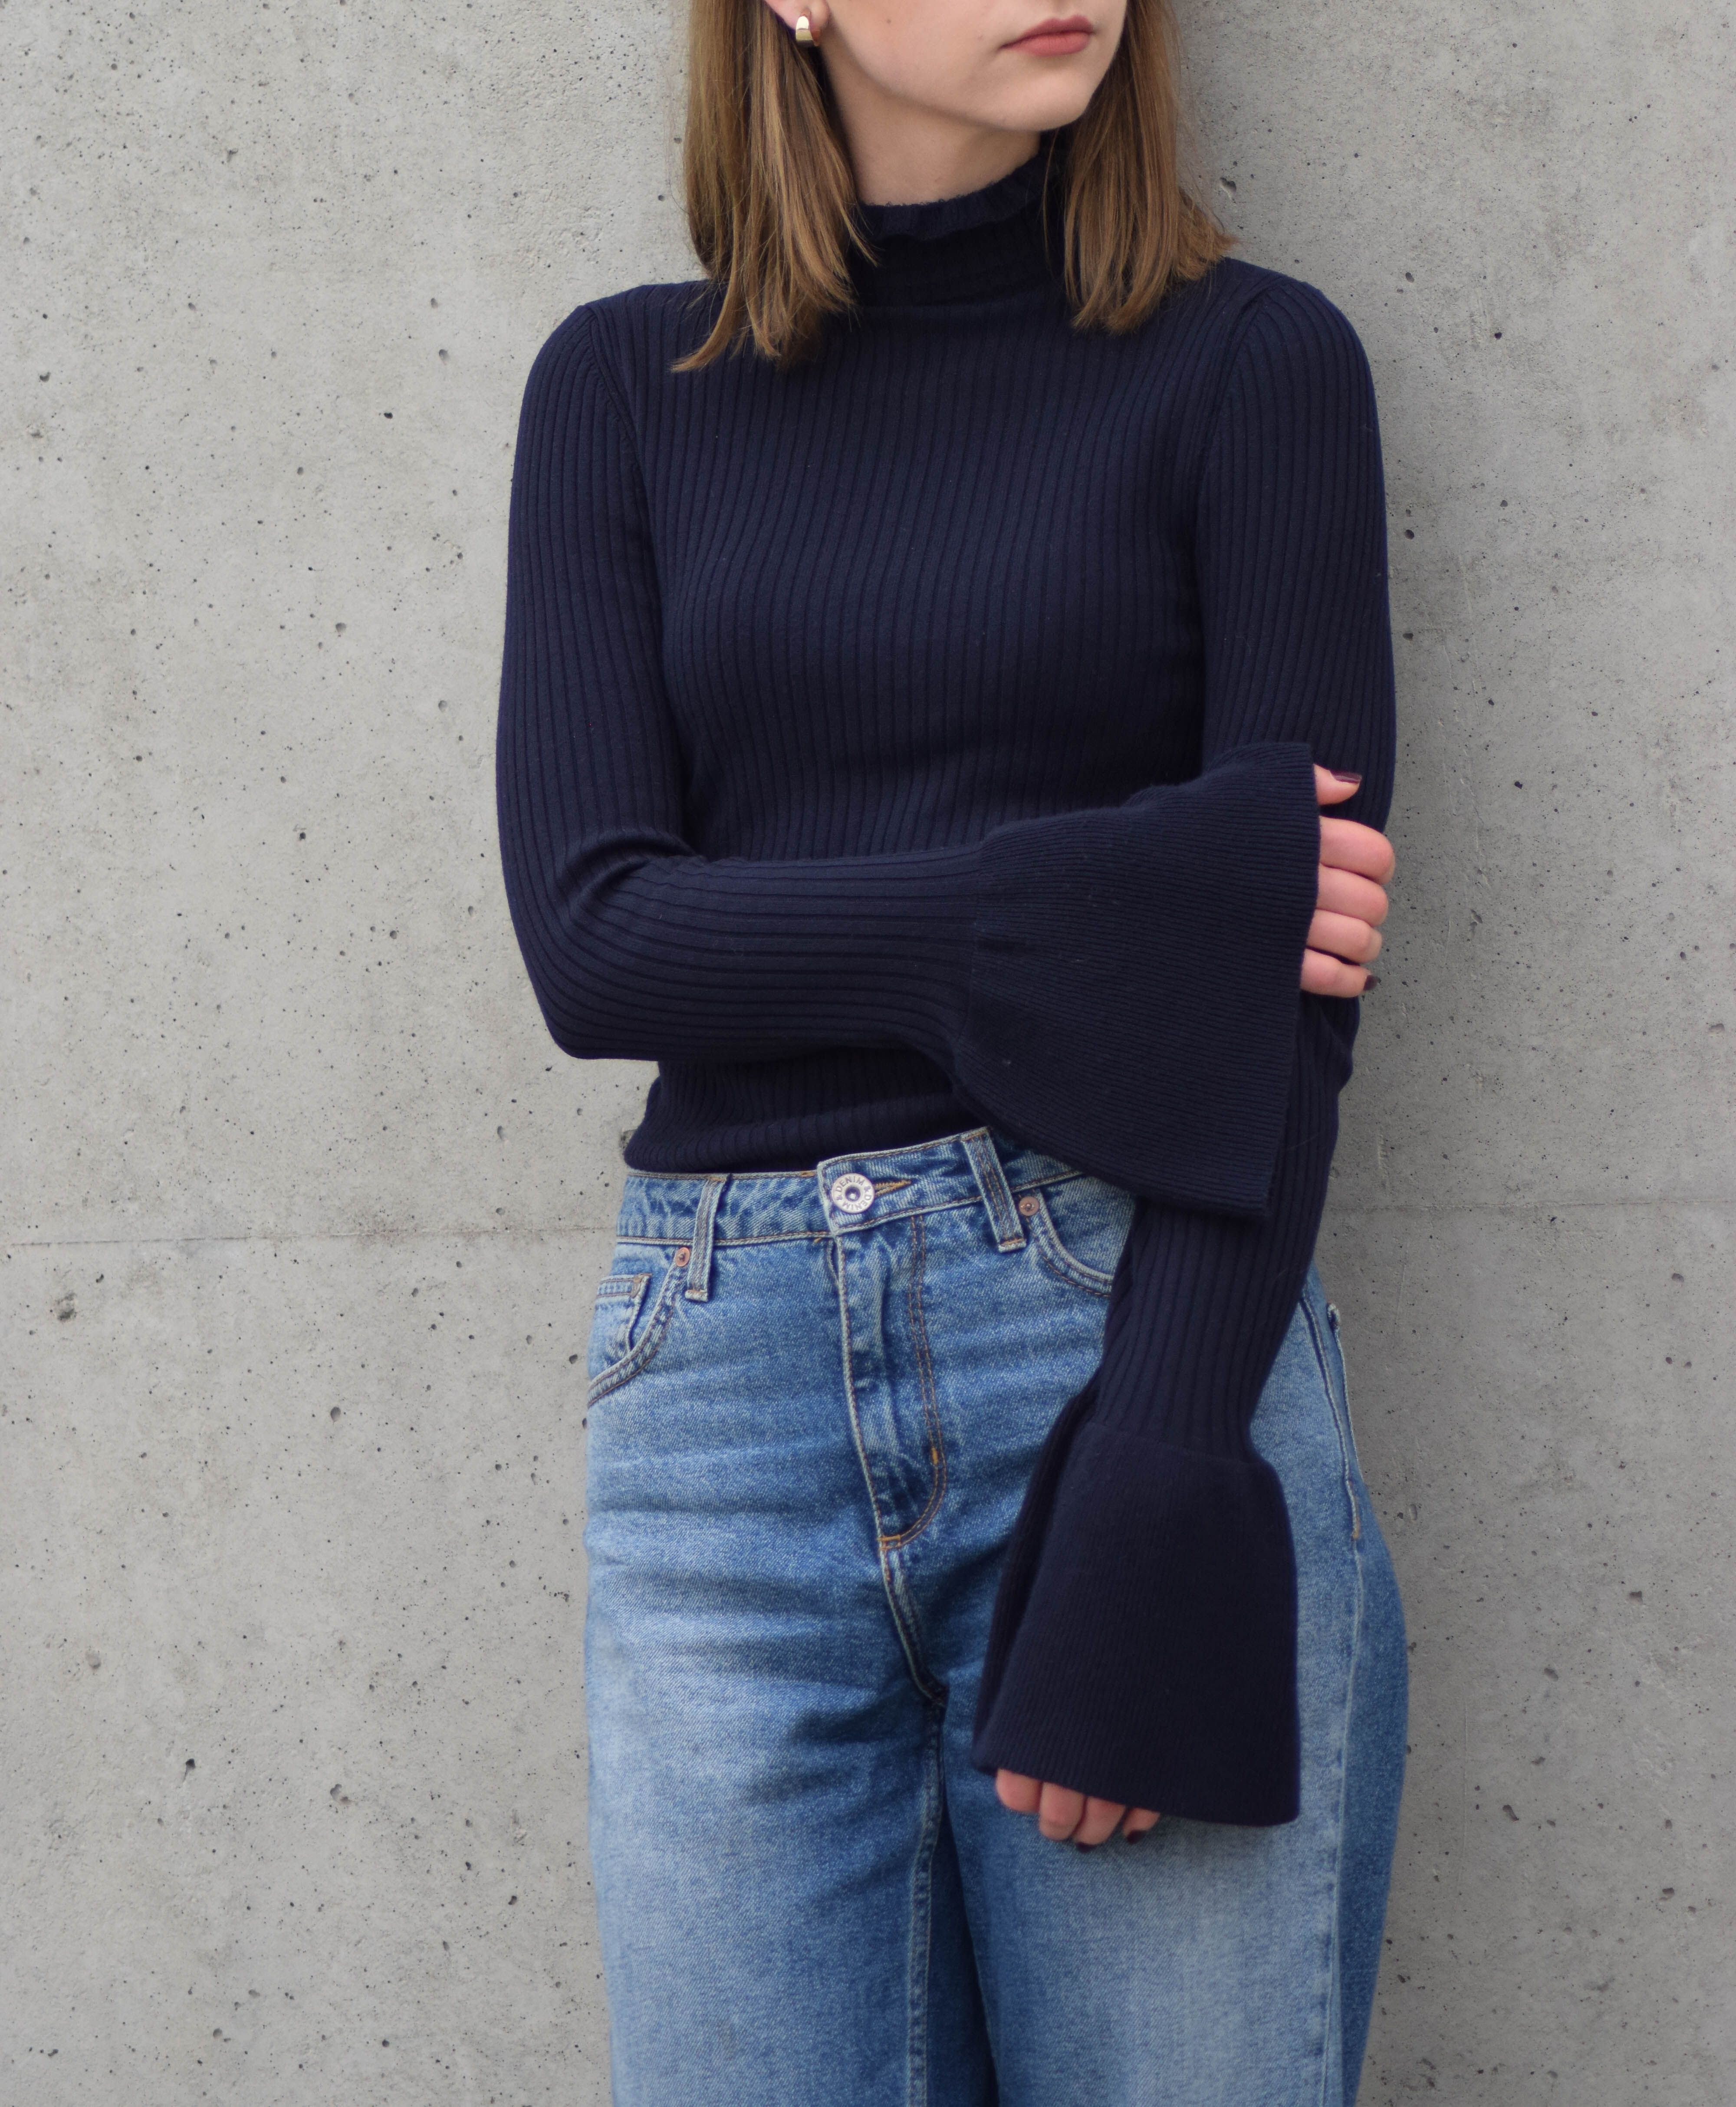 Oversized sleeves, navy, blue and gold. More on afnewsletter.com ...